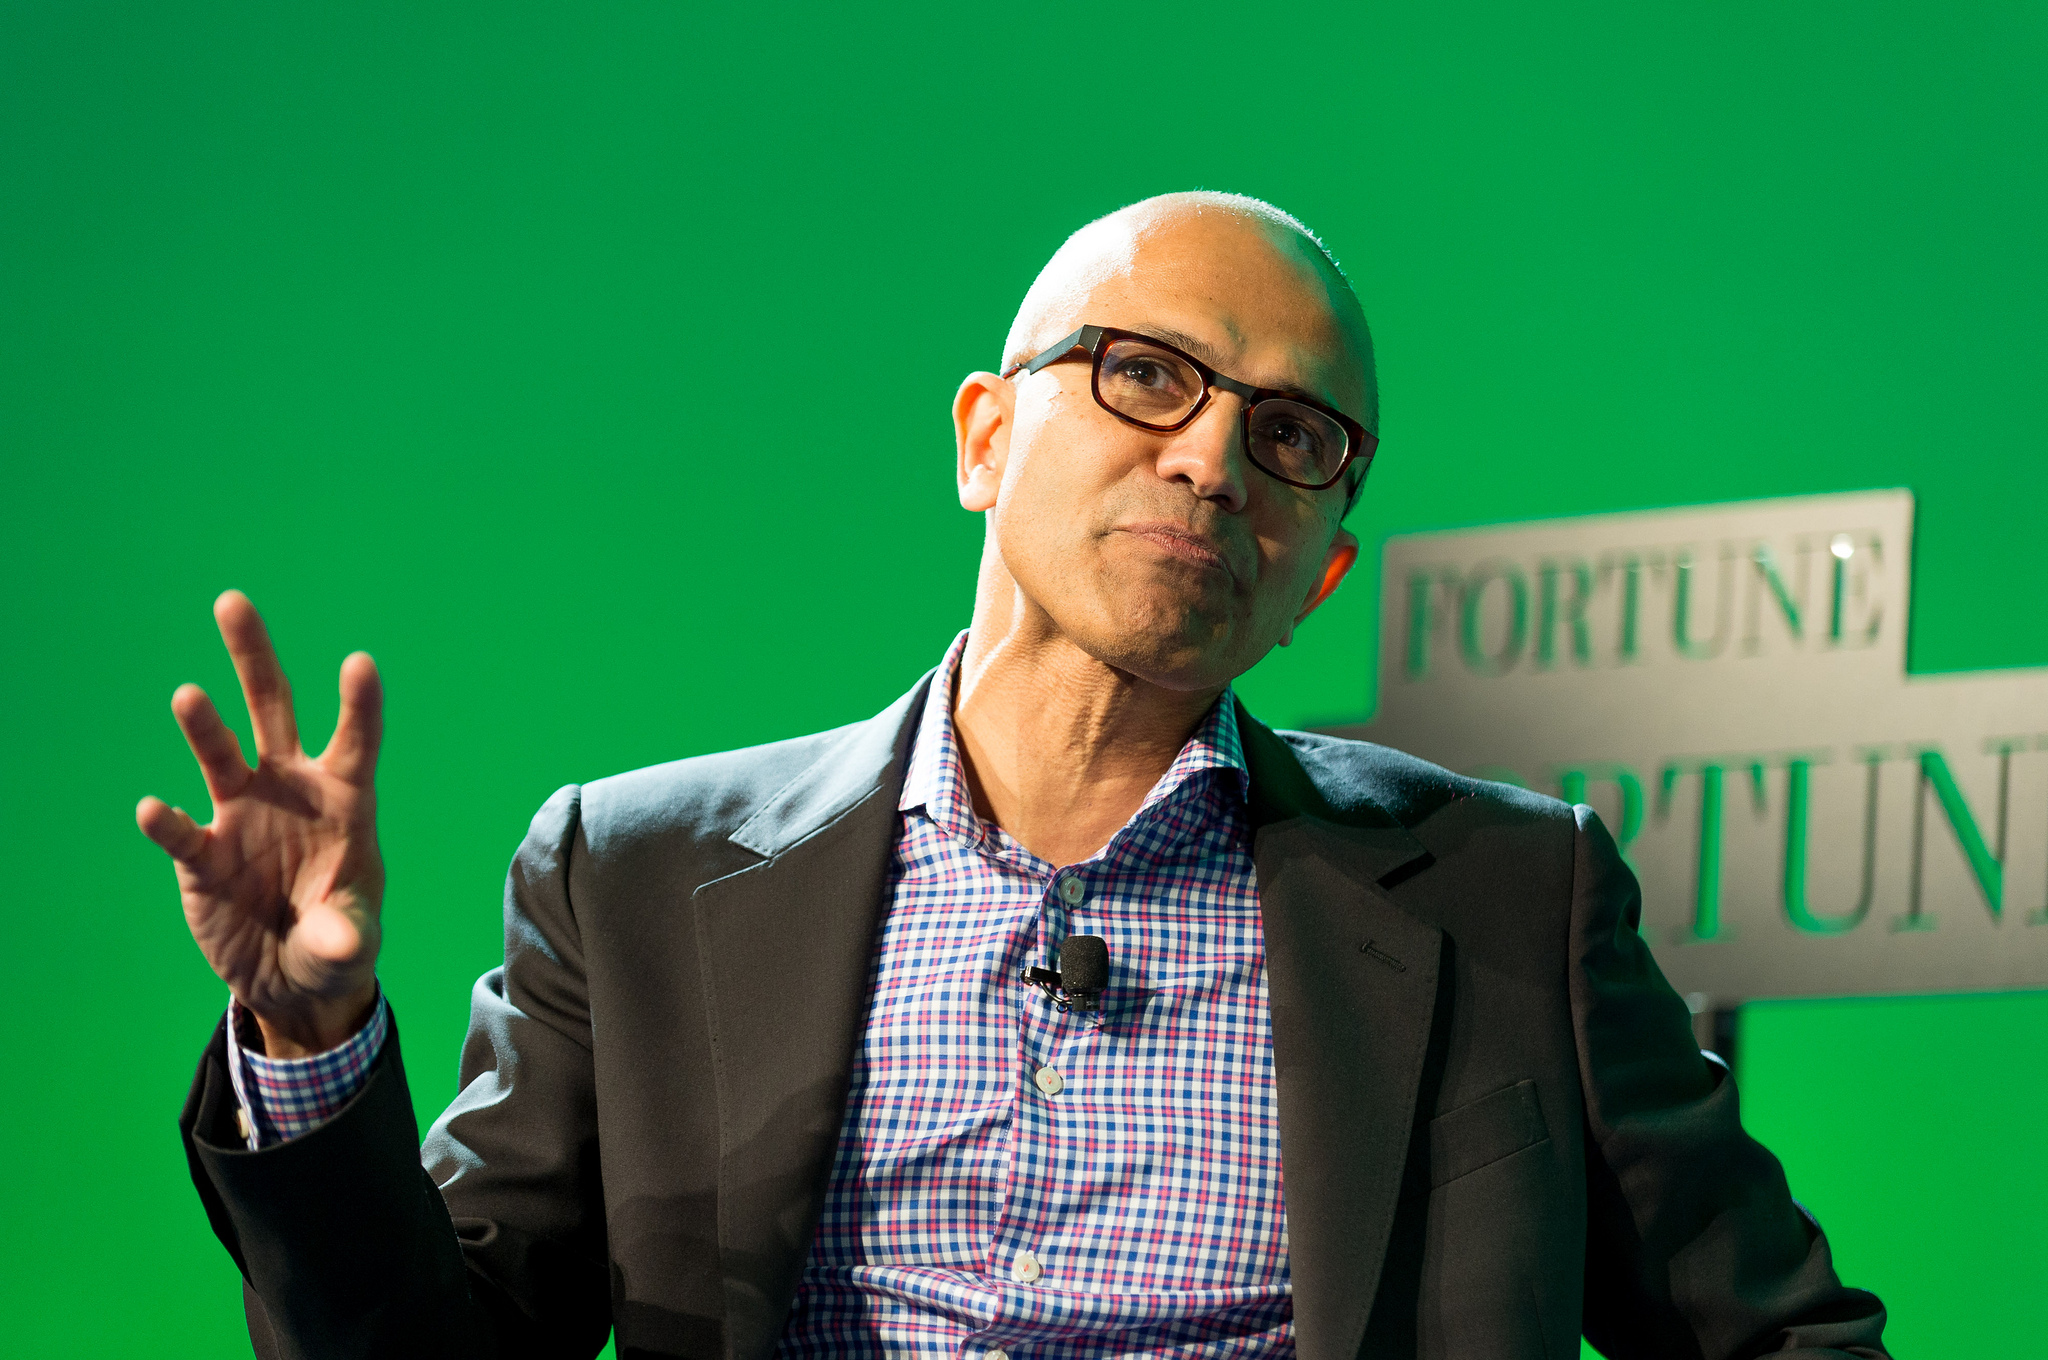 Microsoft CEO Satya Nadella speaking at the Fortune Brainstorm Tech conference in Aspen, Colorado on July 14, 2014.